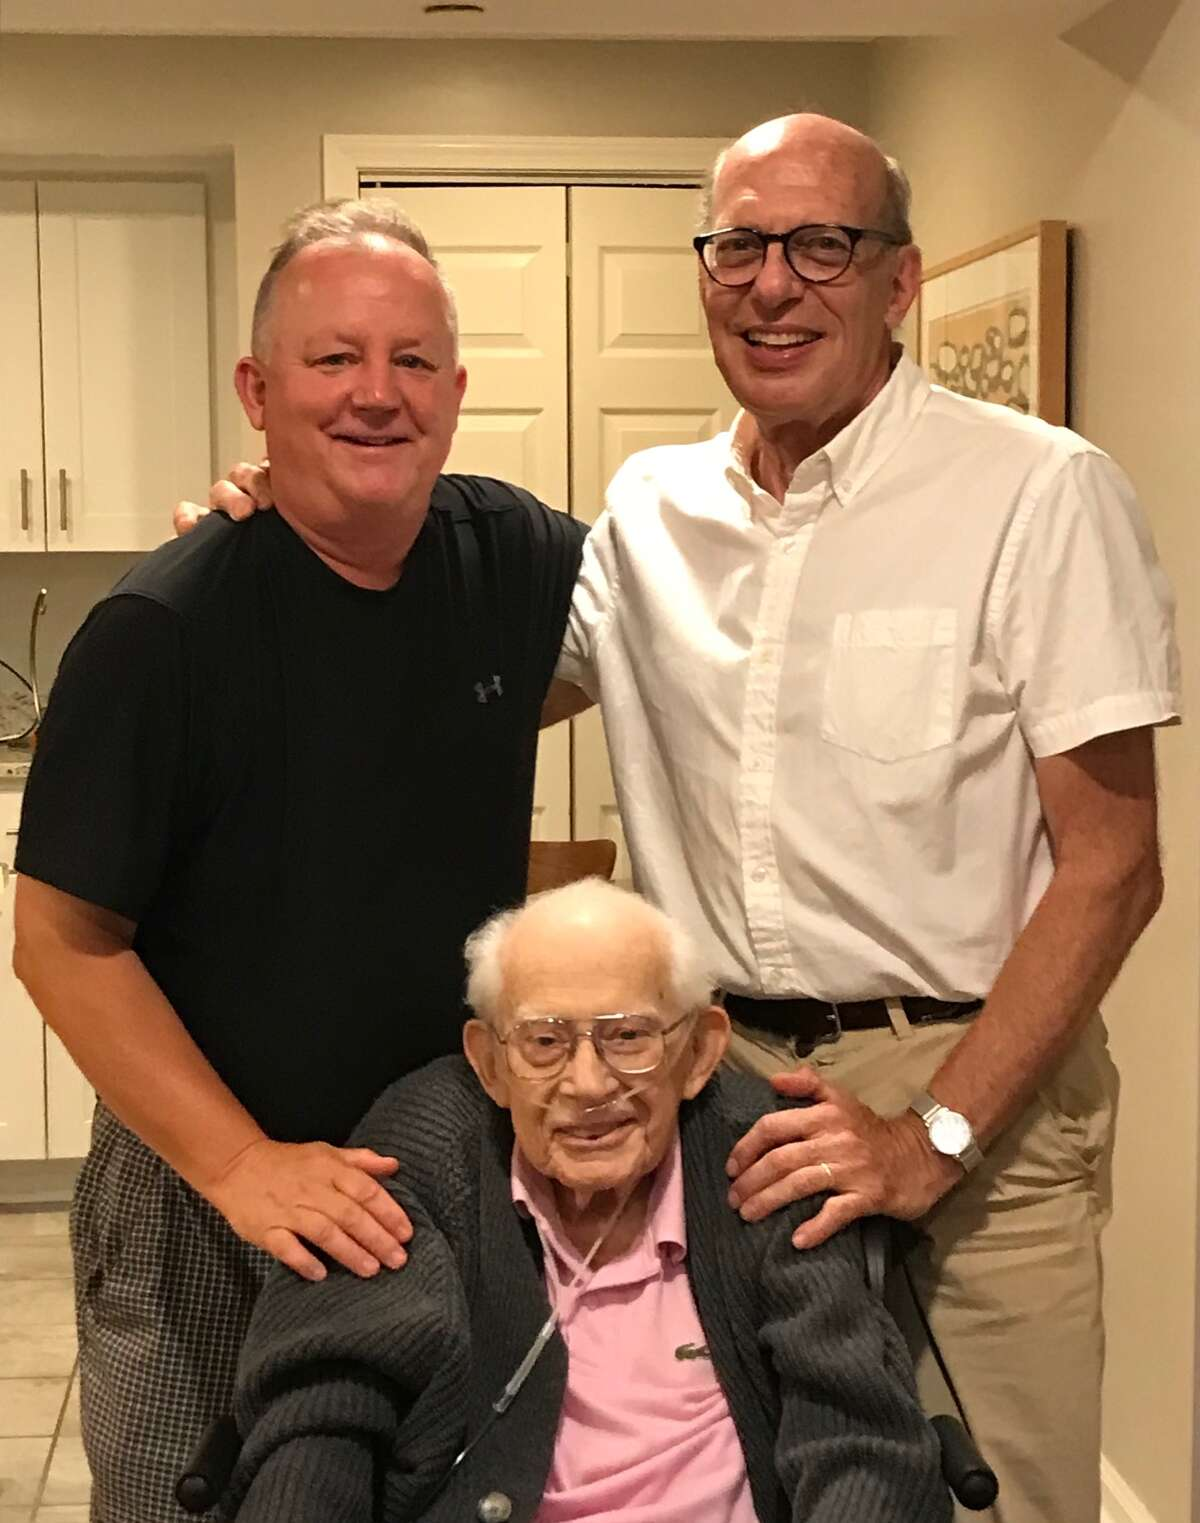 Rob Brill, former Times Union city editor, and Paul Grondahl visited with our editor and mentor, Harry Rosenfeld, at his home one week before he died on Friday at 91.